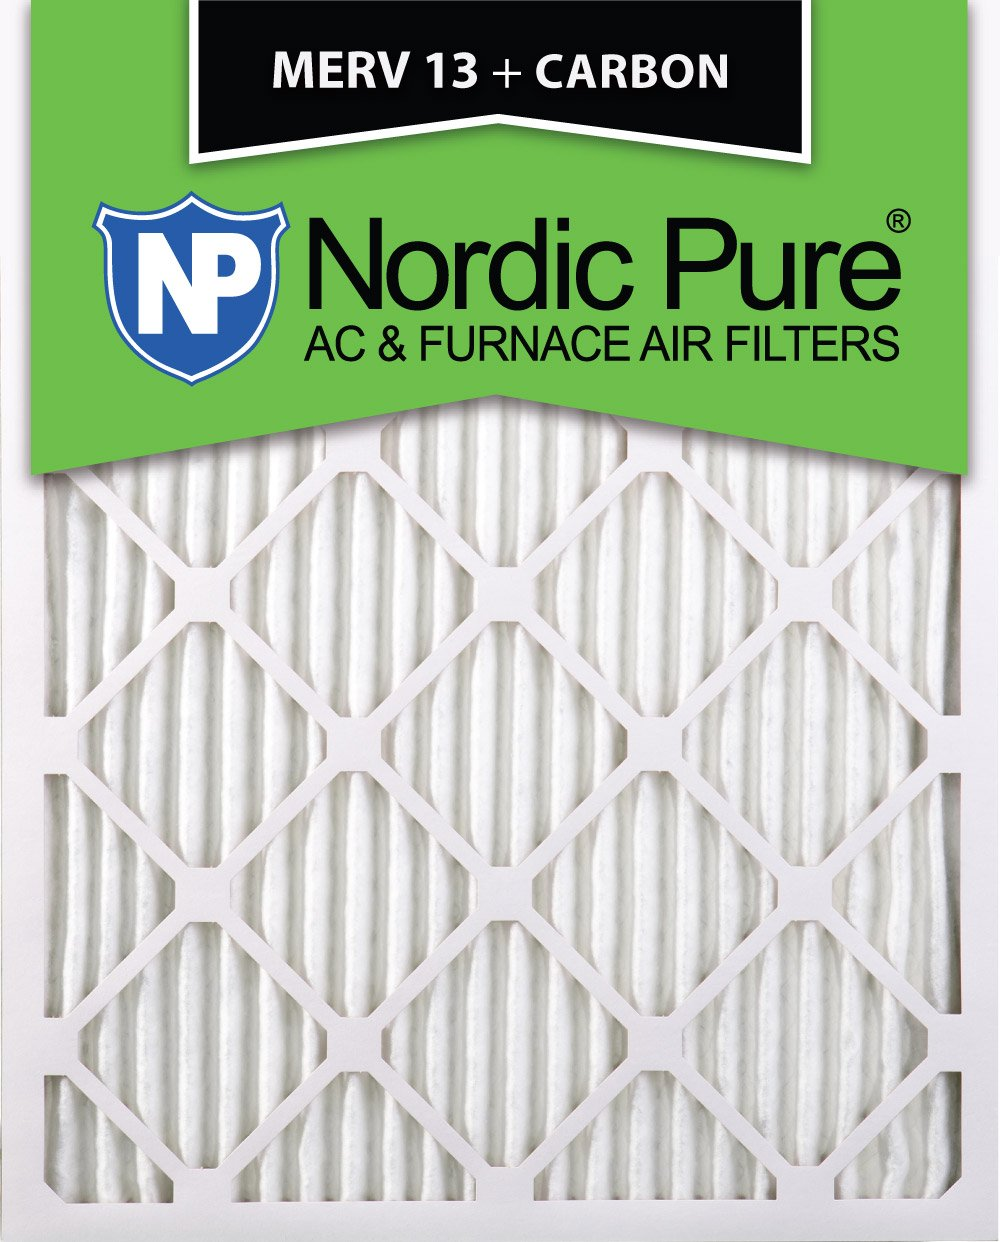 Nordic Pure 14x24x1 MERV 13 Plus Carbon Pleated AC Furnace Air Filters 2 Pack 14x24x1M13+C Piece